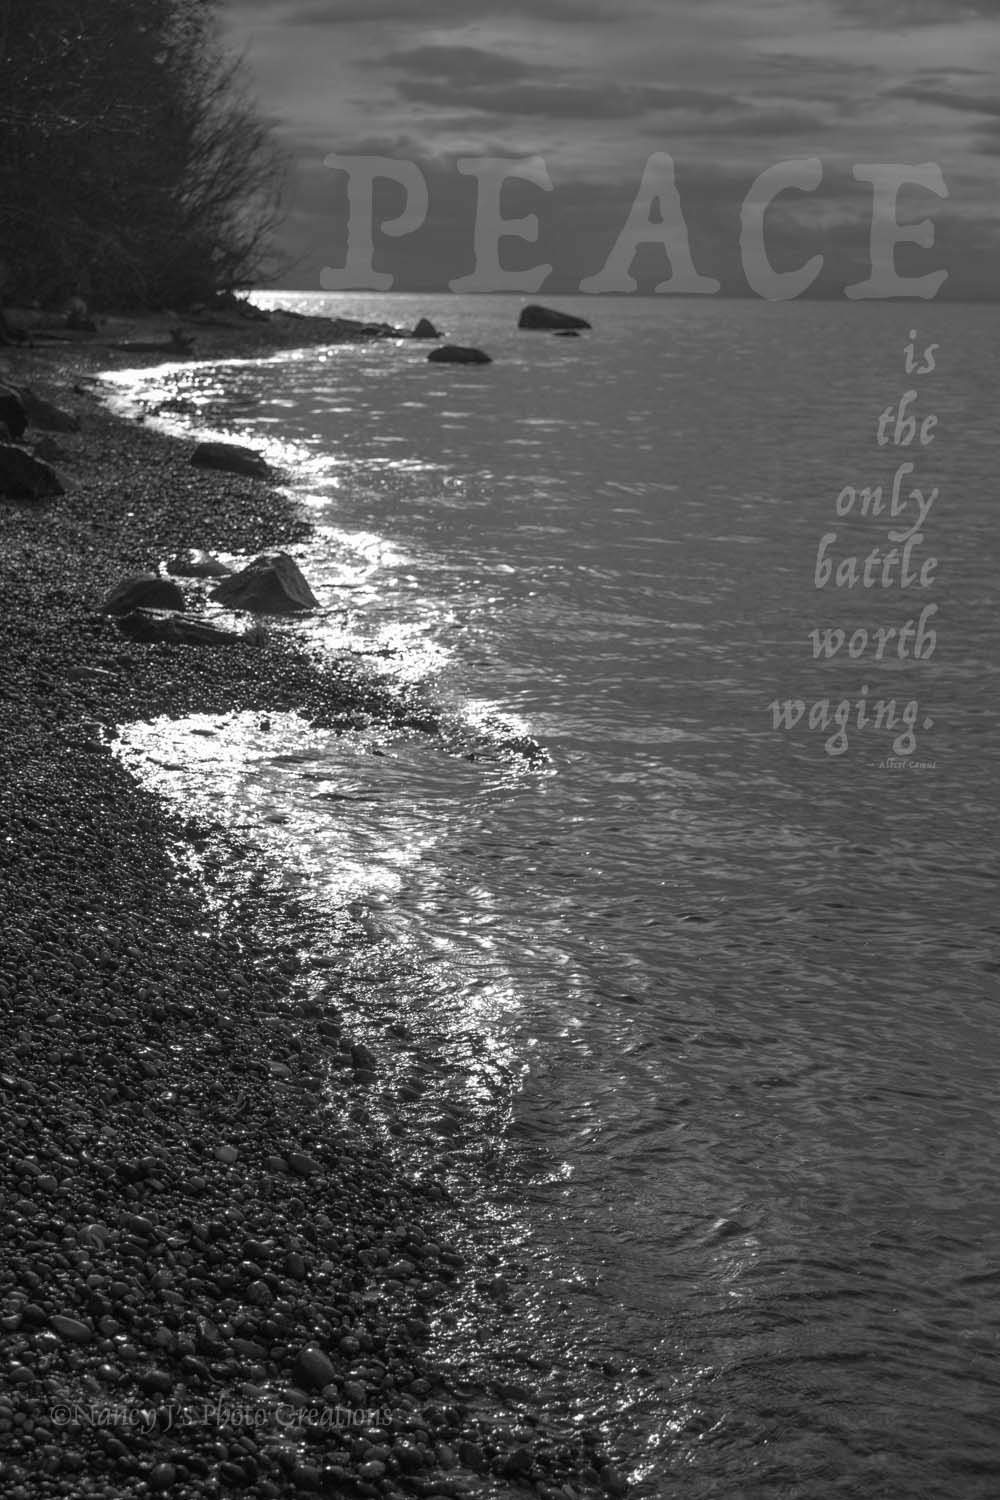 Wall art for the soul unframed inspirational gift nature photography black and white landscape print peace quote lake moonlight reflection 5x7 8x10 8x12